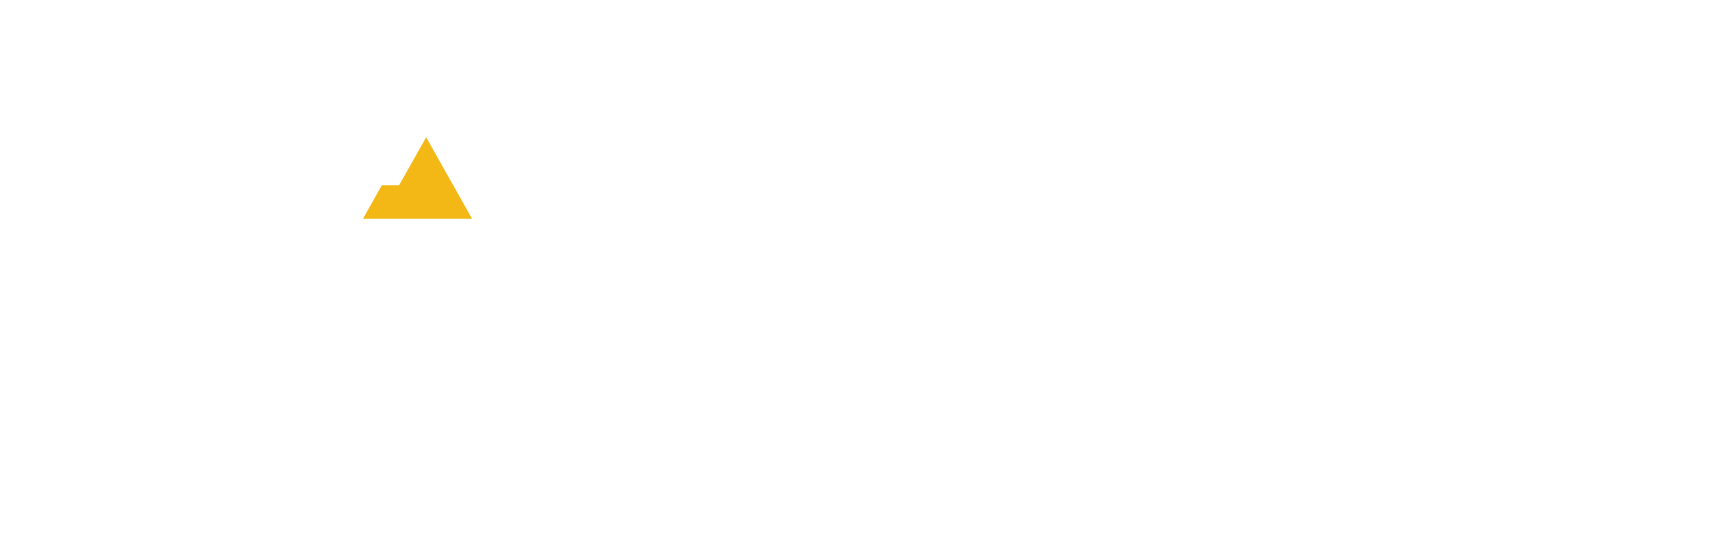 The Institute for Human Devlopment logo consists of the name at the bottom and N A U Northern Arizona University situated at the top. The A of N A U has a mountain embedded in it.